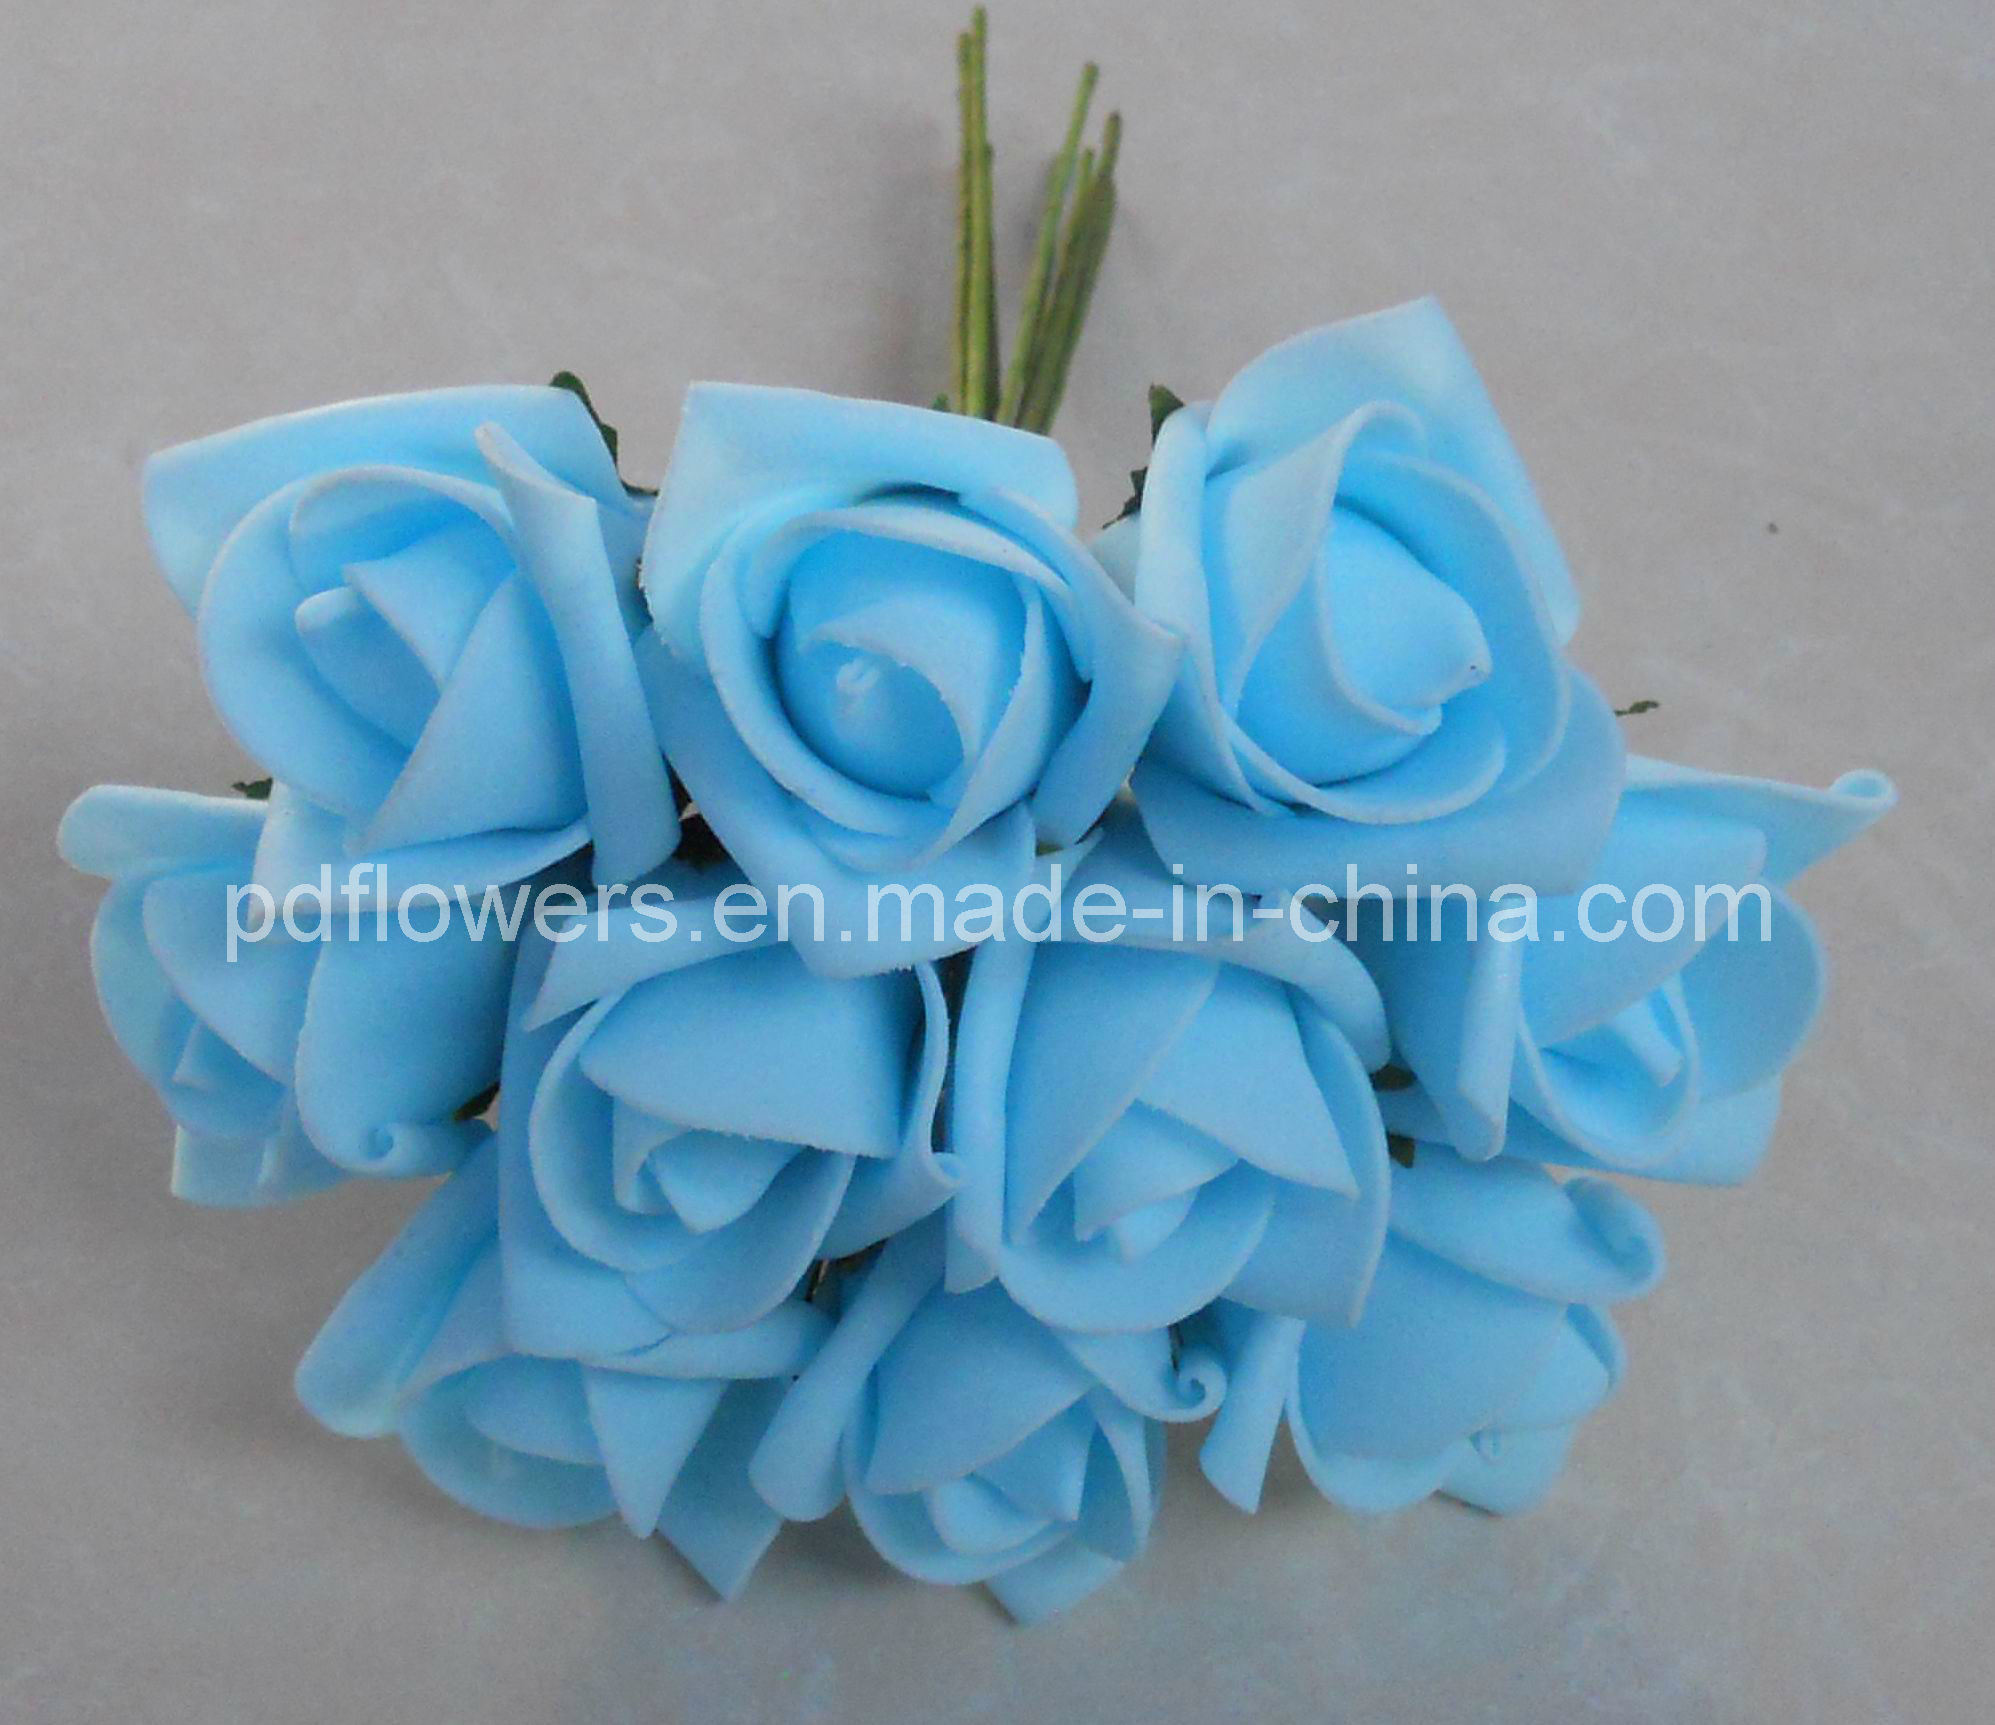 China Artificial Flower Foam Roses China Rose Bouquet Wedding Flowers